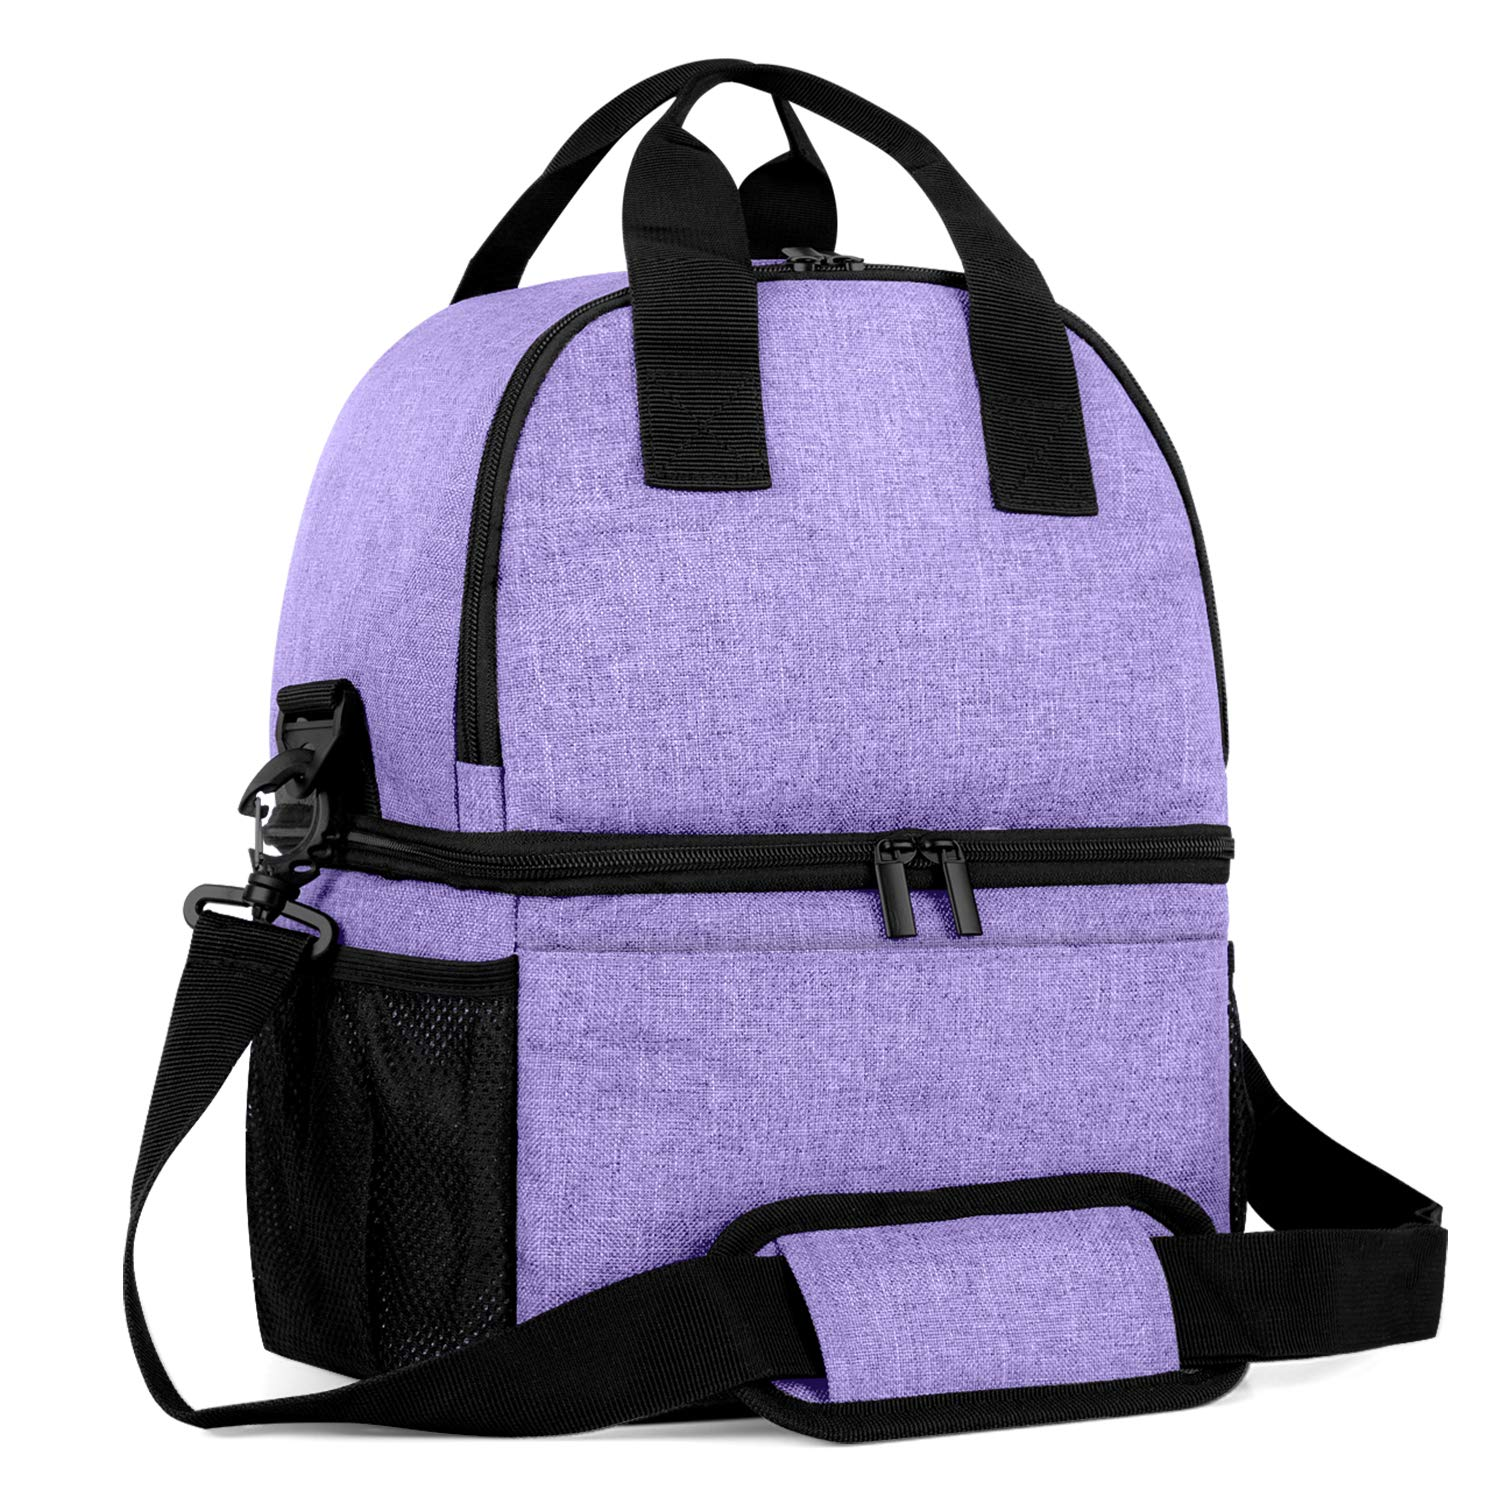 Teamoy Breast Pump Bag Tote with Cooler Compartment for Breast Pump, Cooler Bag, Breast Milk Bottles and More, Double Layer Pumping Bag for Working Moms, Purple(Bag Only)